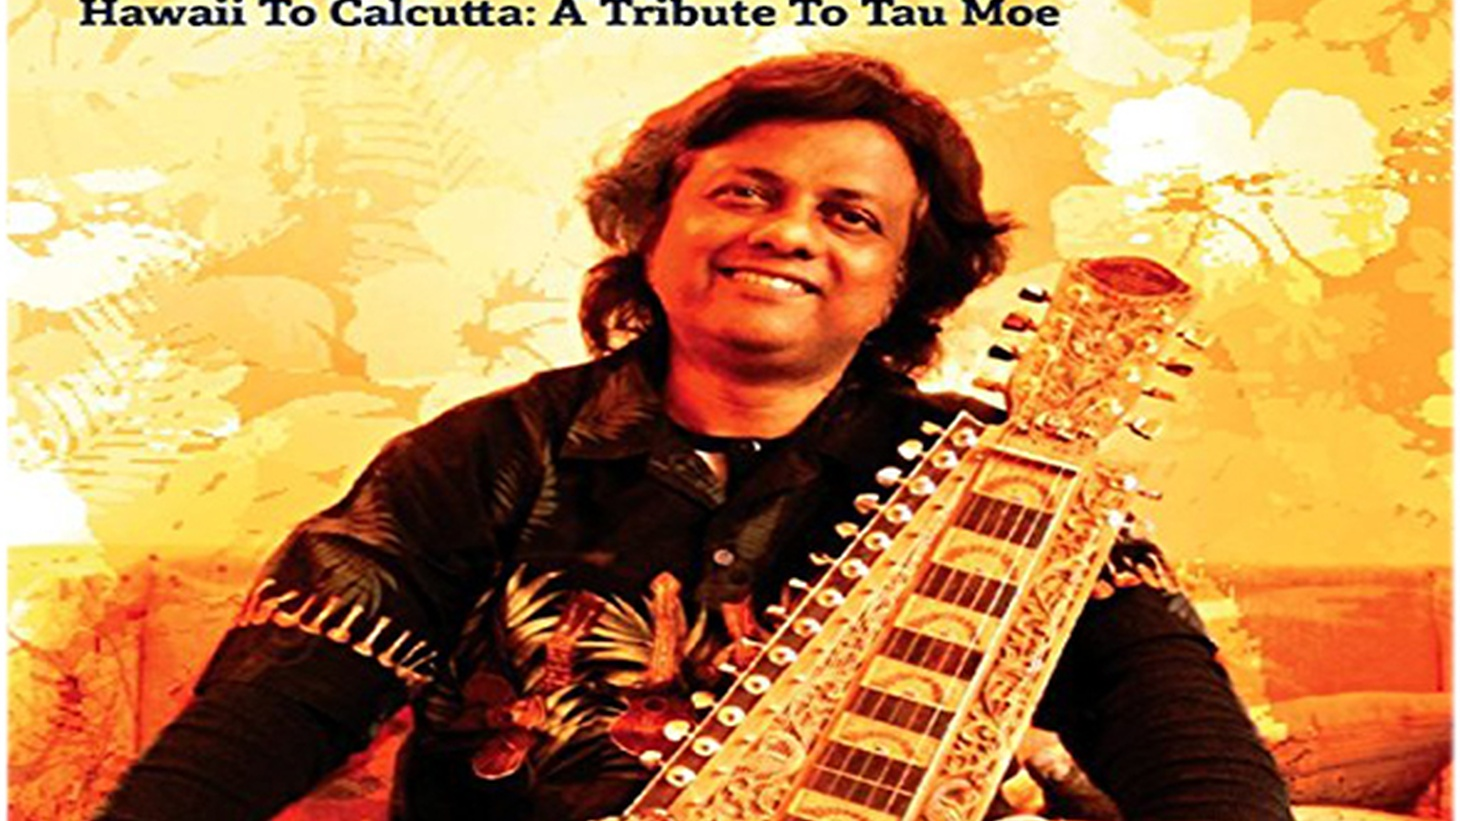 Tom showcases new music from guitar great Steve Khan, slide sitar maestro Debashish Bhattacharya, Ivory Coast classic from the Sumo Brothers, and remembers the late Al Jarreau and David Axelrod.